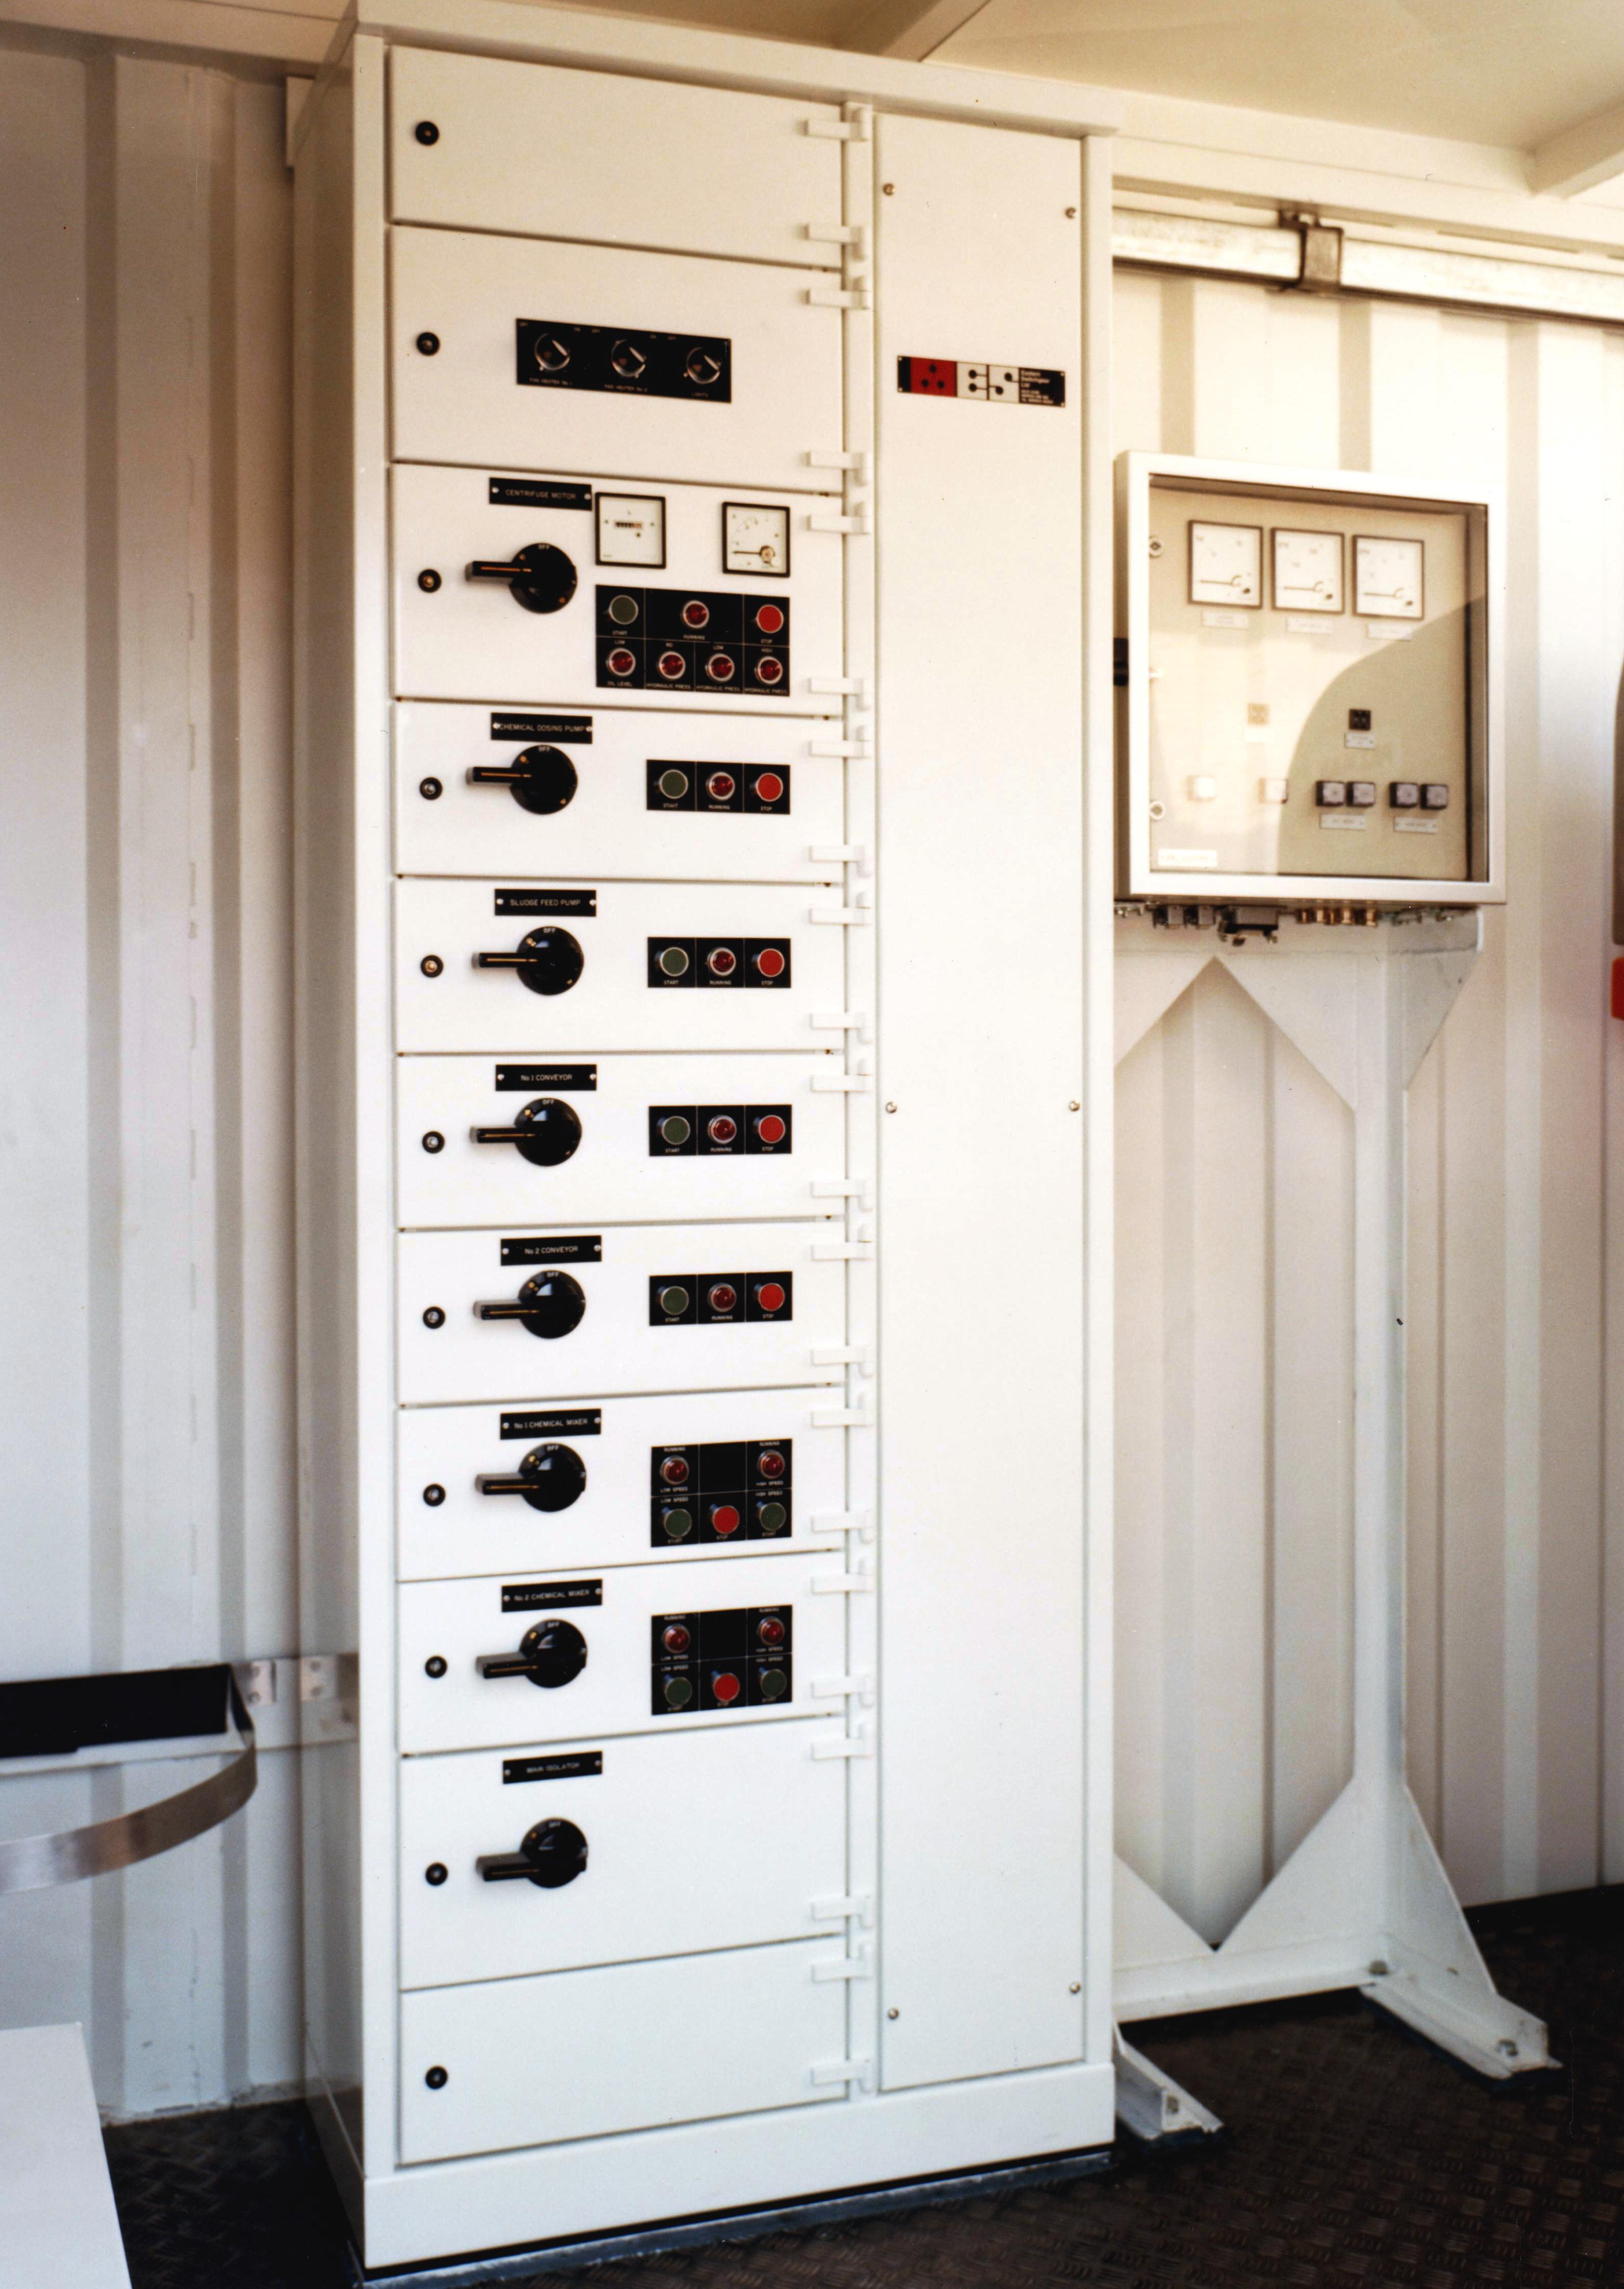 Switchboard S Motor Control Consoles Peto Services